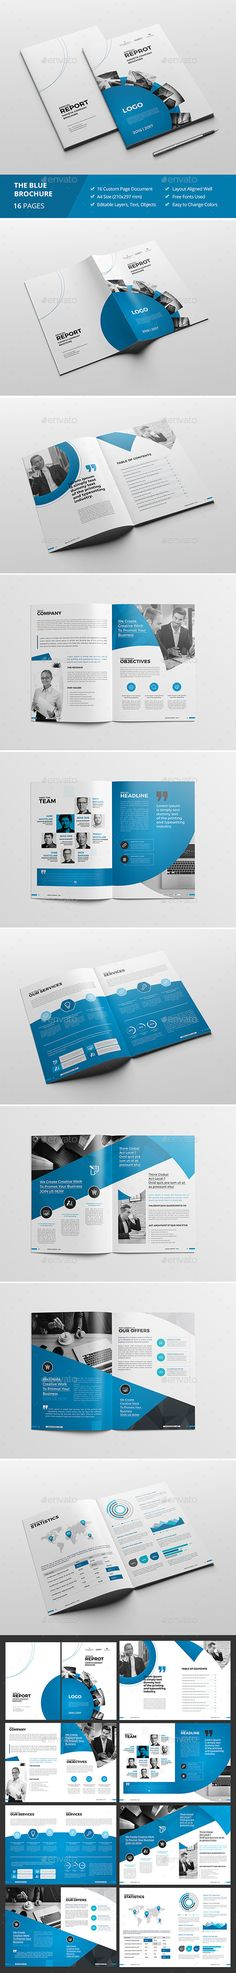 Haweya Annual Report 07 — InDesign INDD #210x297 #modern • Download ➝ https://graphicriver.net/item/haweya-annual-report-07/18909118?ref=pxcr